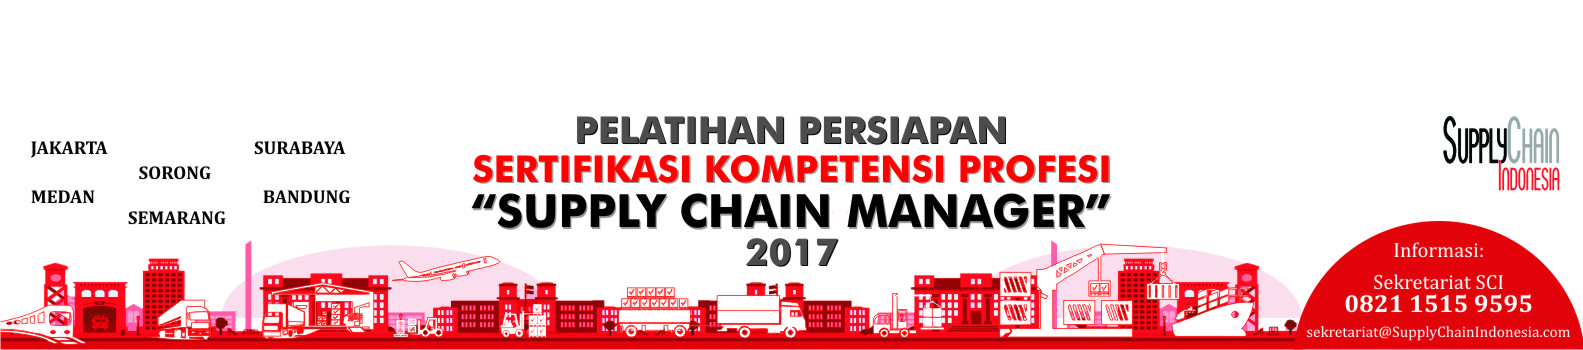 Rev-Web-Banner-Supply-Chain-Manager-2017